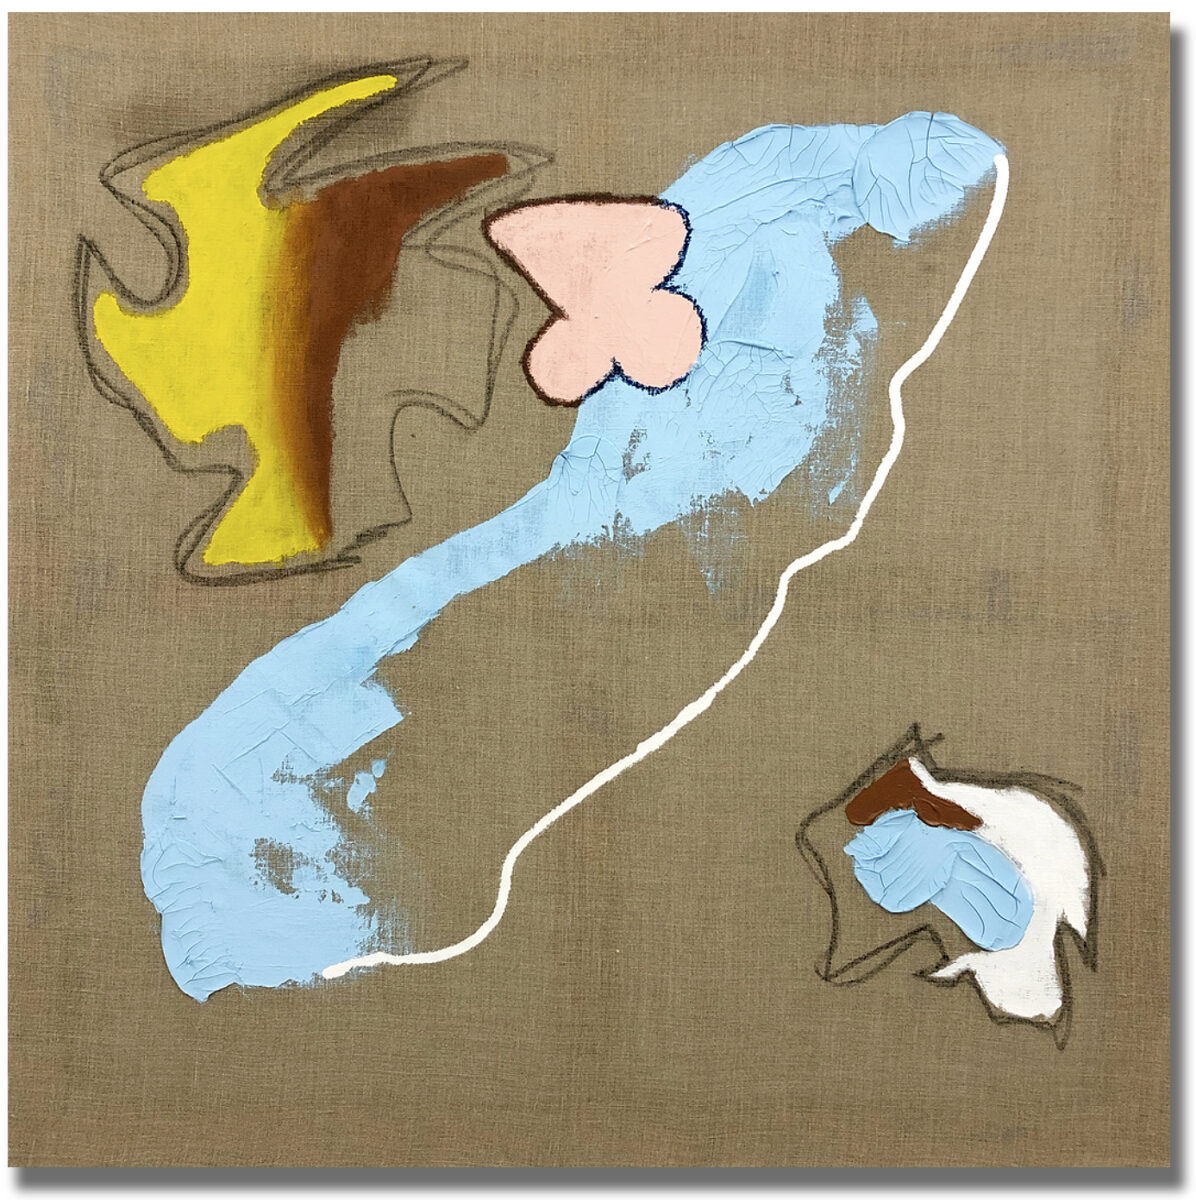 A photograph of the painting Untitled by Hetty Douglas